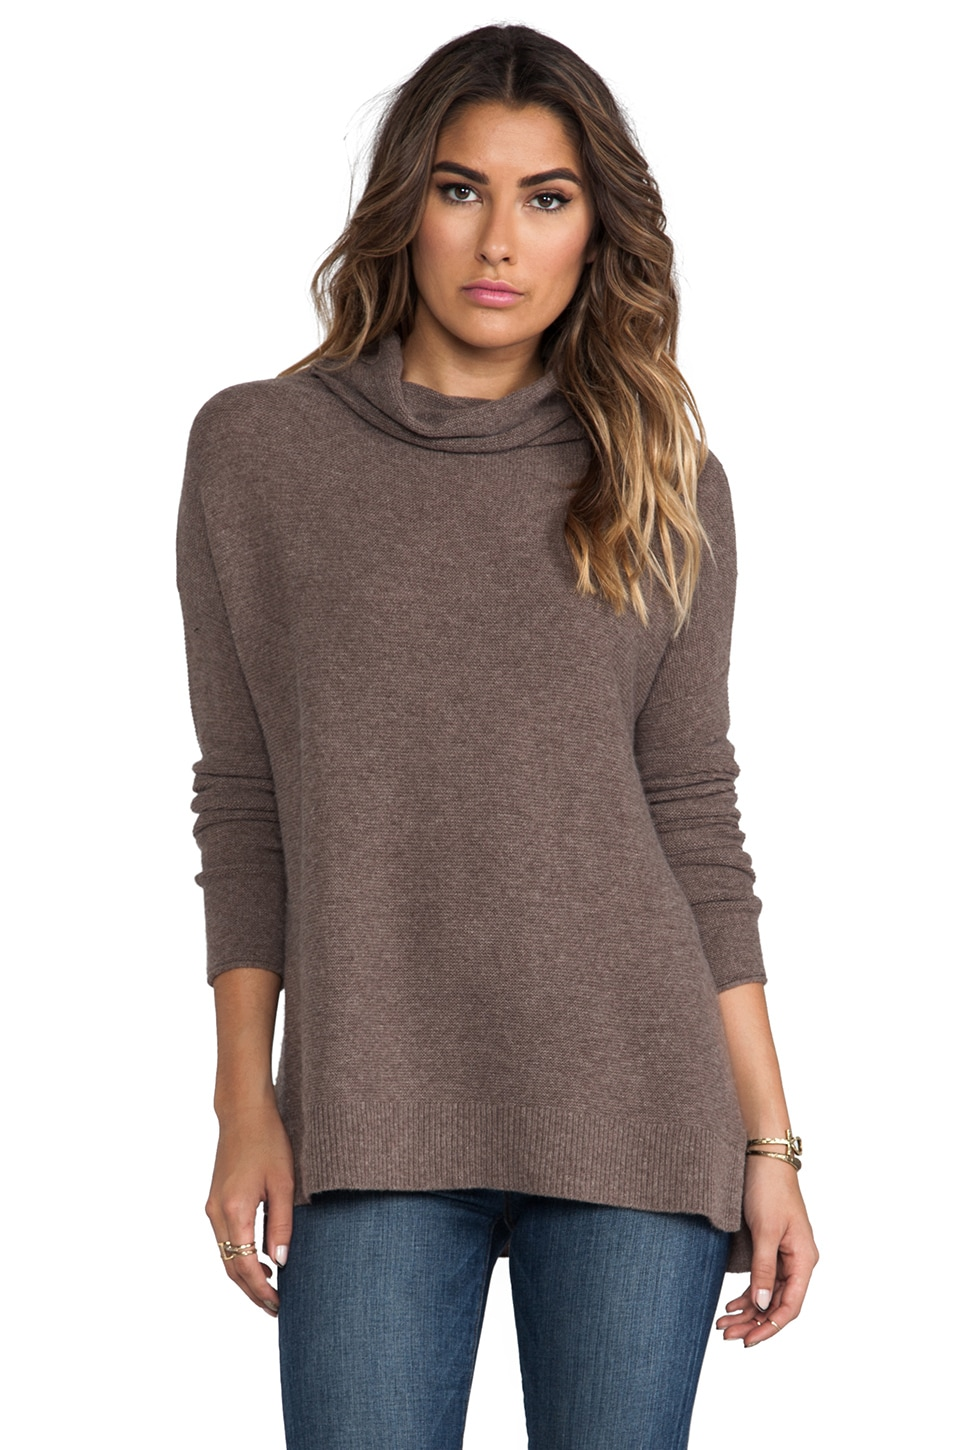 Joie Reverse Pearl Stitch Cashmere Sweater in Light Heather Smoky Topaz